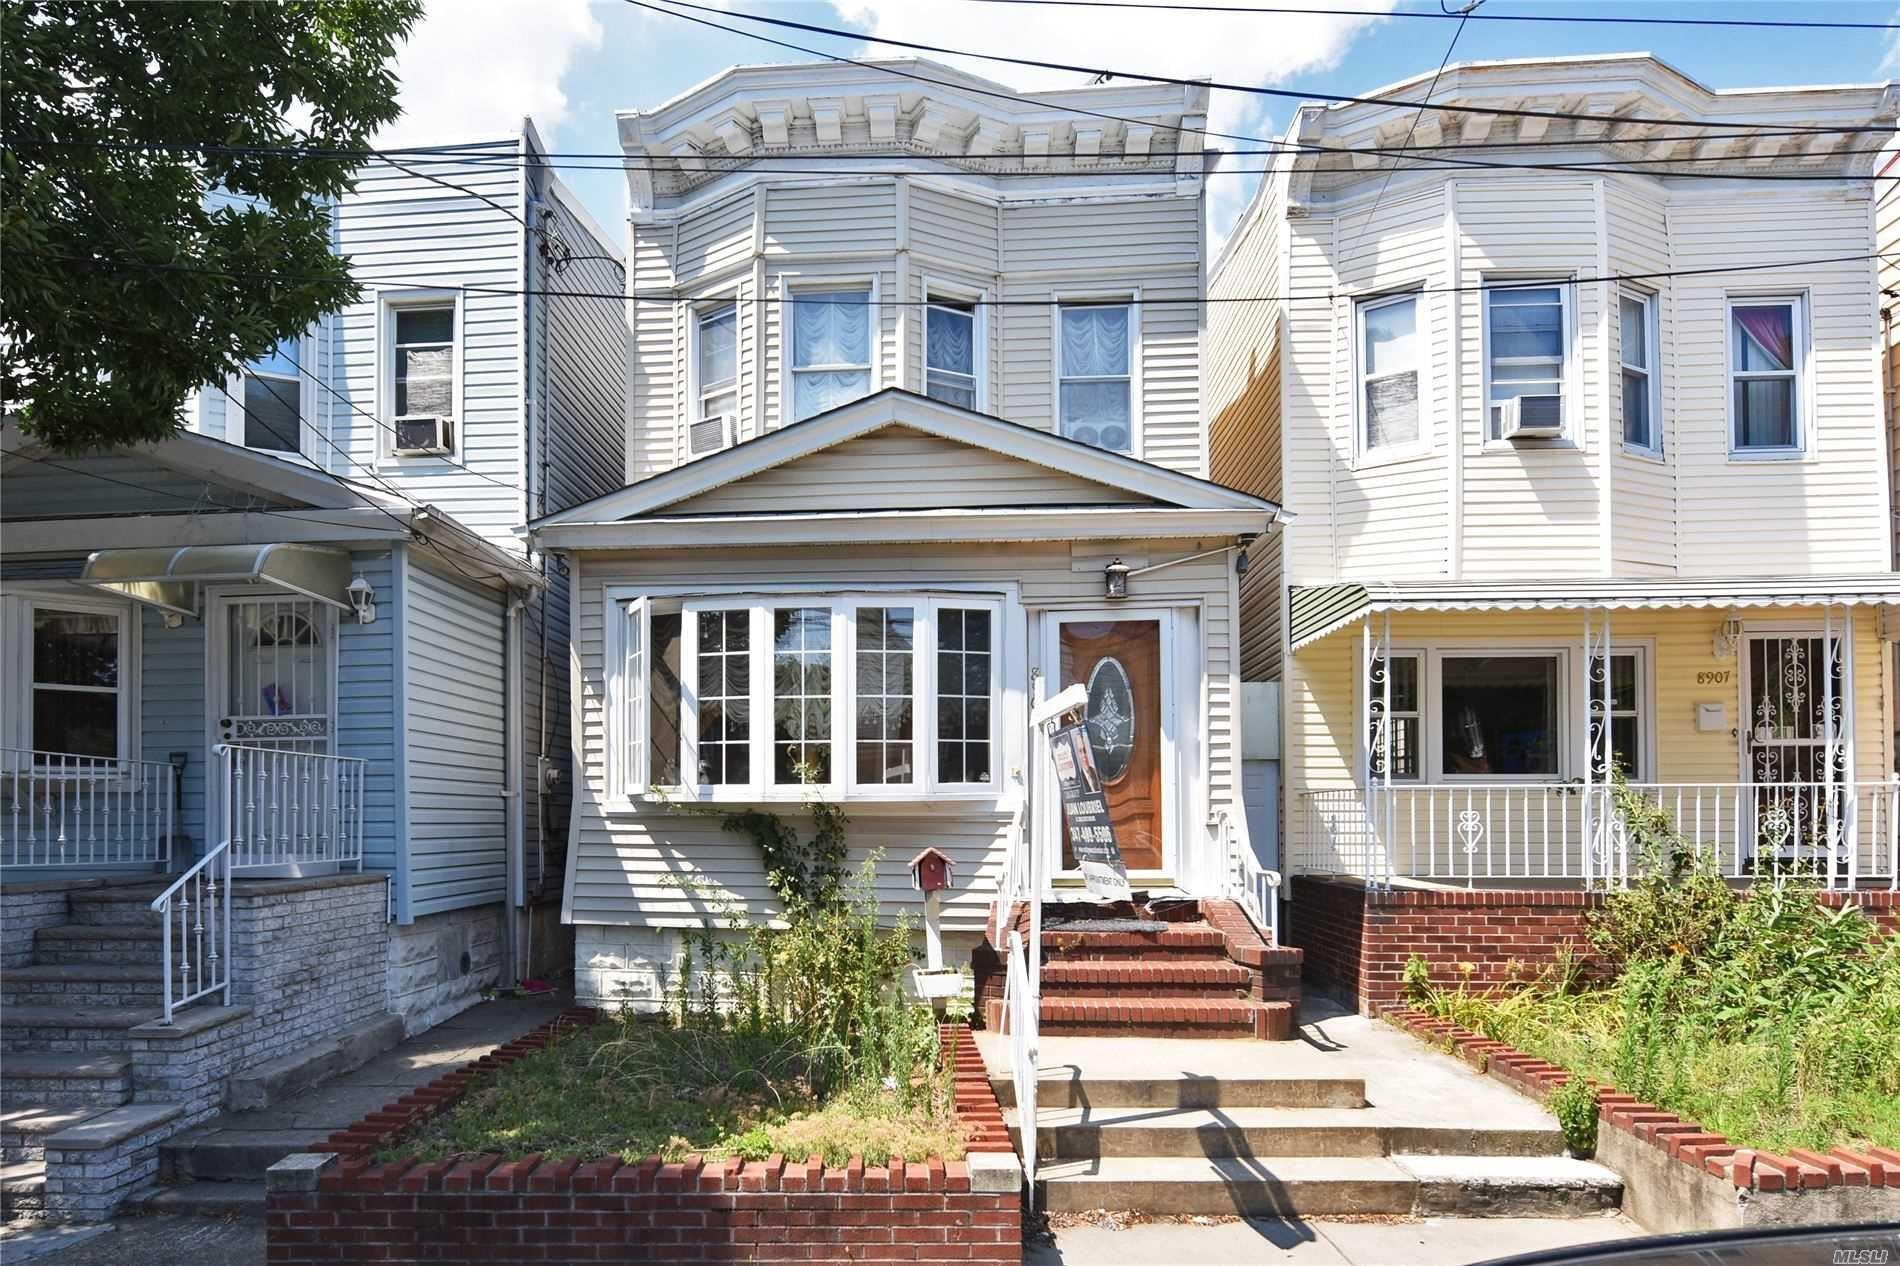 89-05 91st Avenue, Woodhaven, NY 11421 - MLS#: 3232745